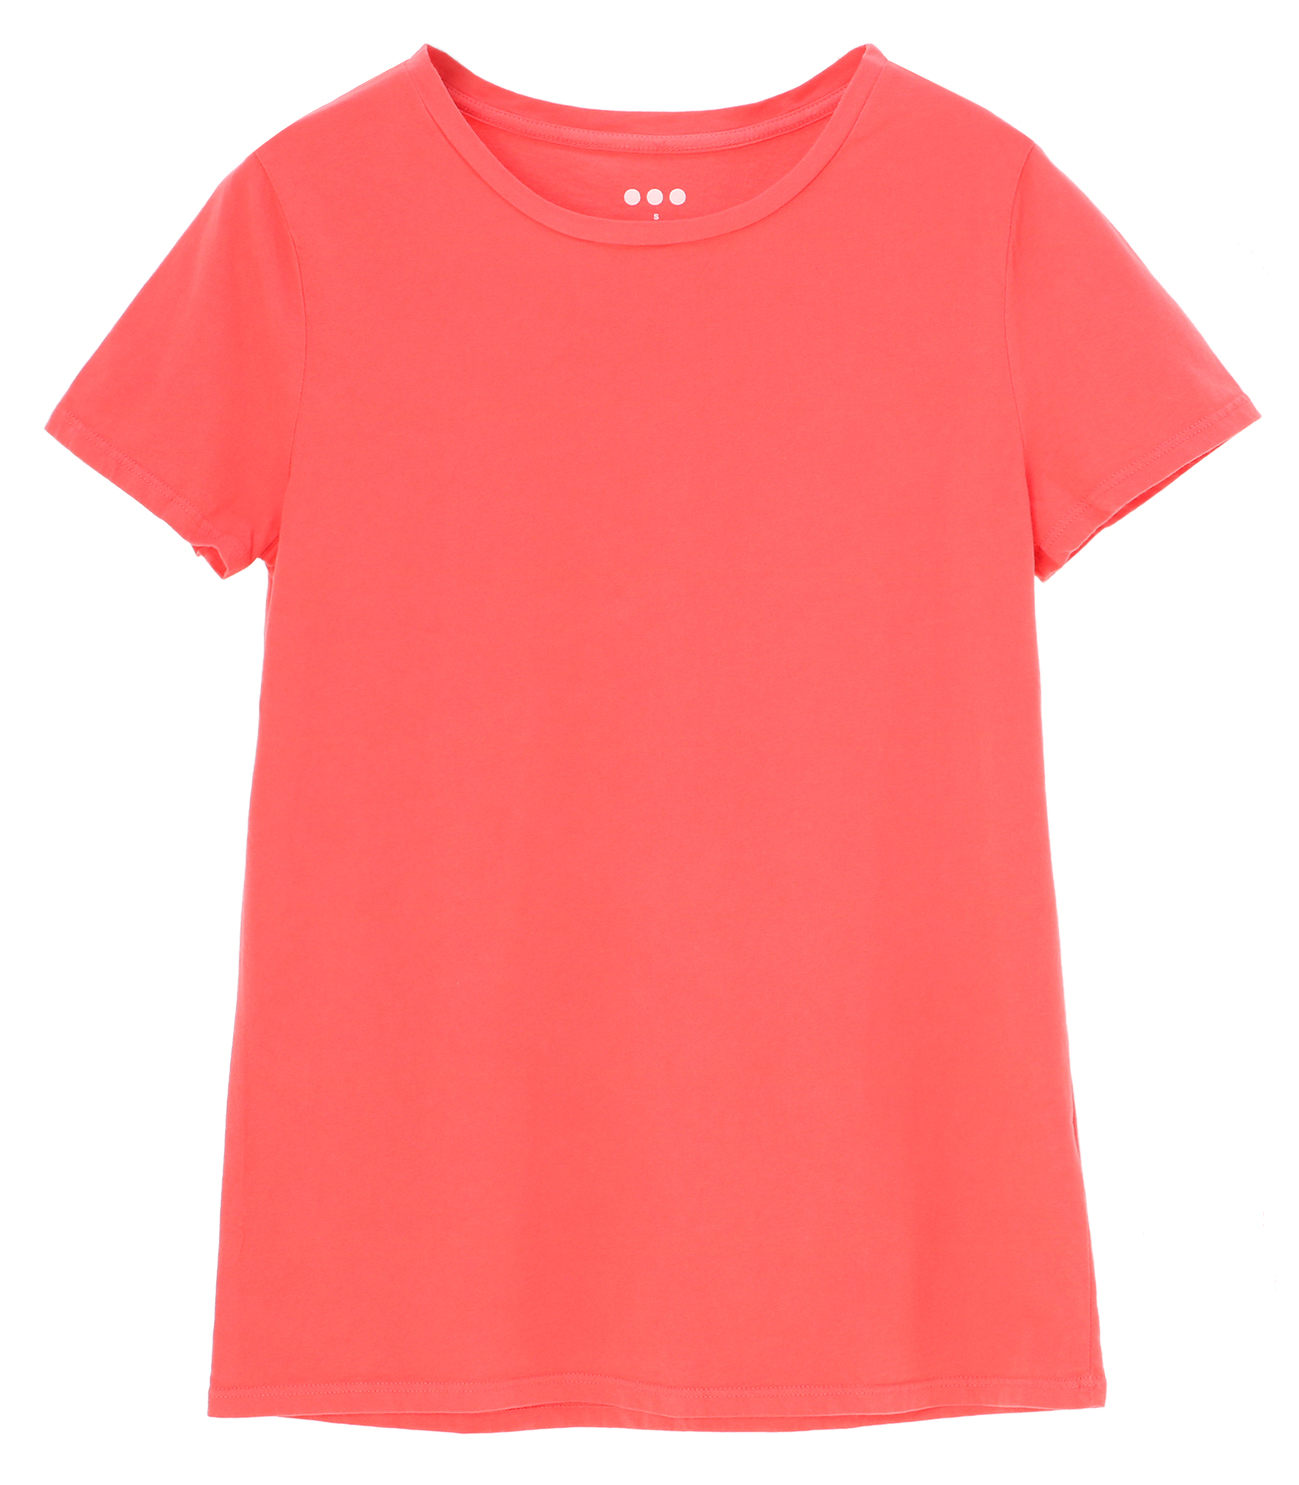 Rita sanded jersey crew classic tee 詳細画像 coral powder 1